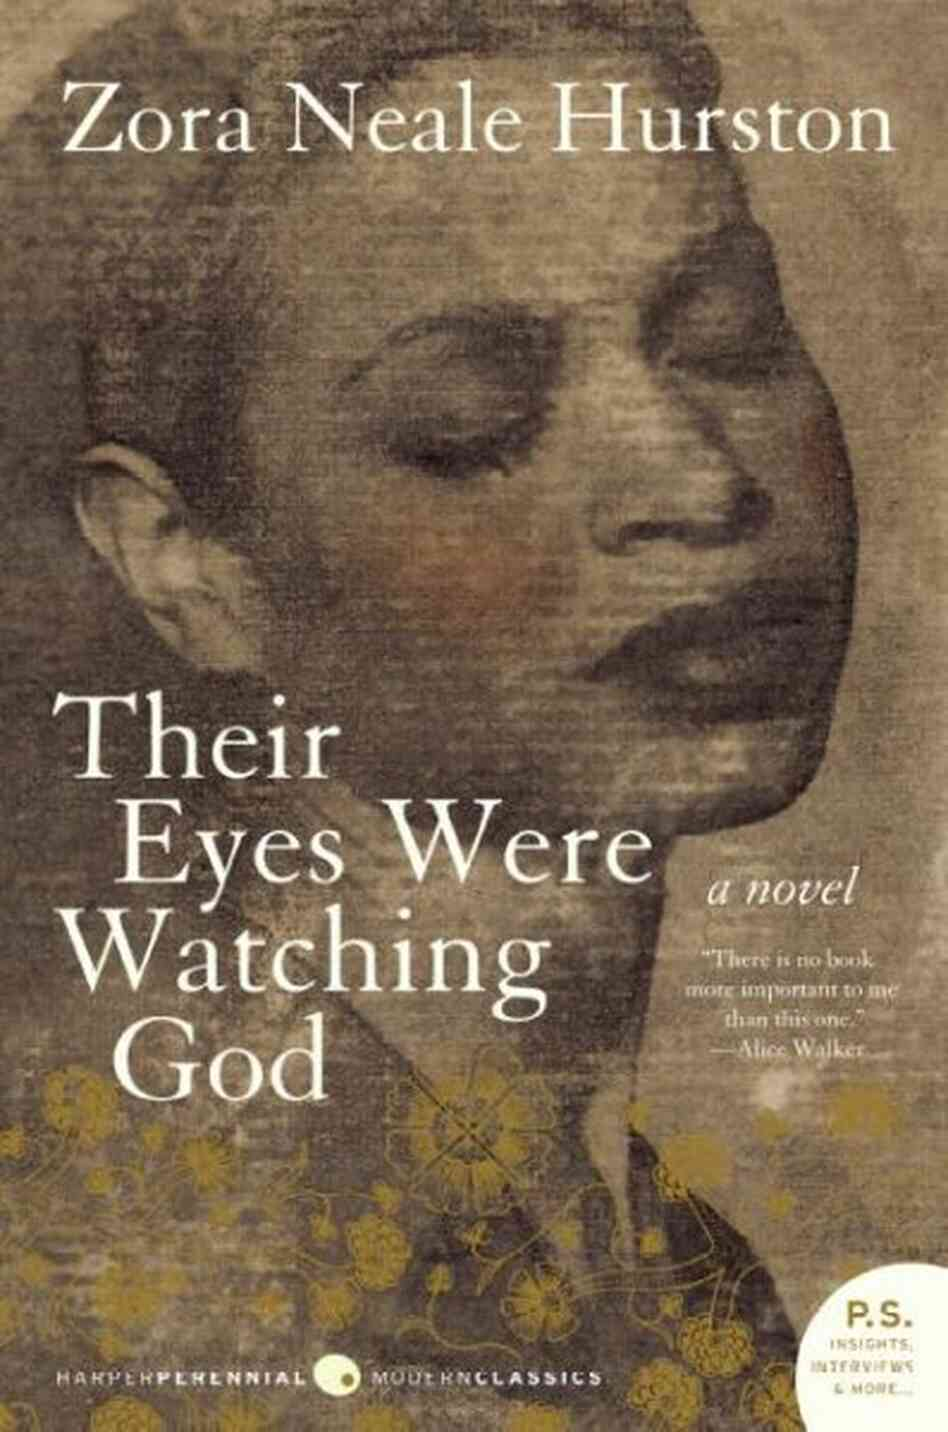 an analysis of reoccuring motifs in the novel their eyes were watching god by zora neale hurston Their backs on her , in such a time were they  pg185 their eyes were watching god by zora neale  cited hurston, zora , their eyes were watching god.